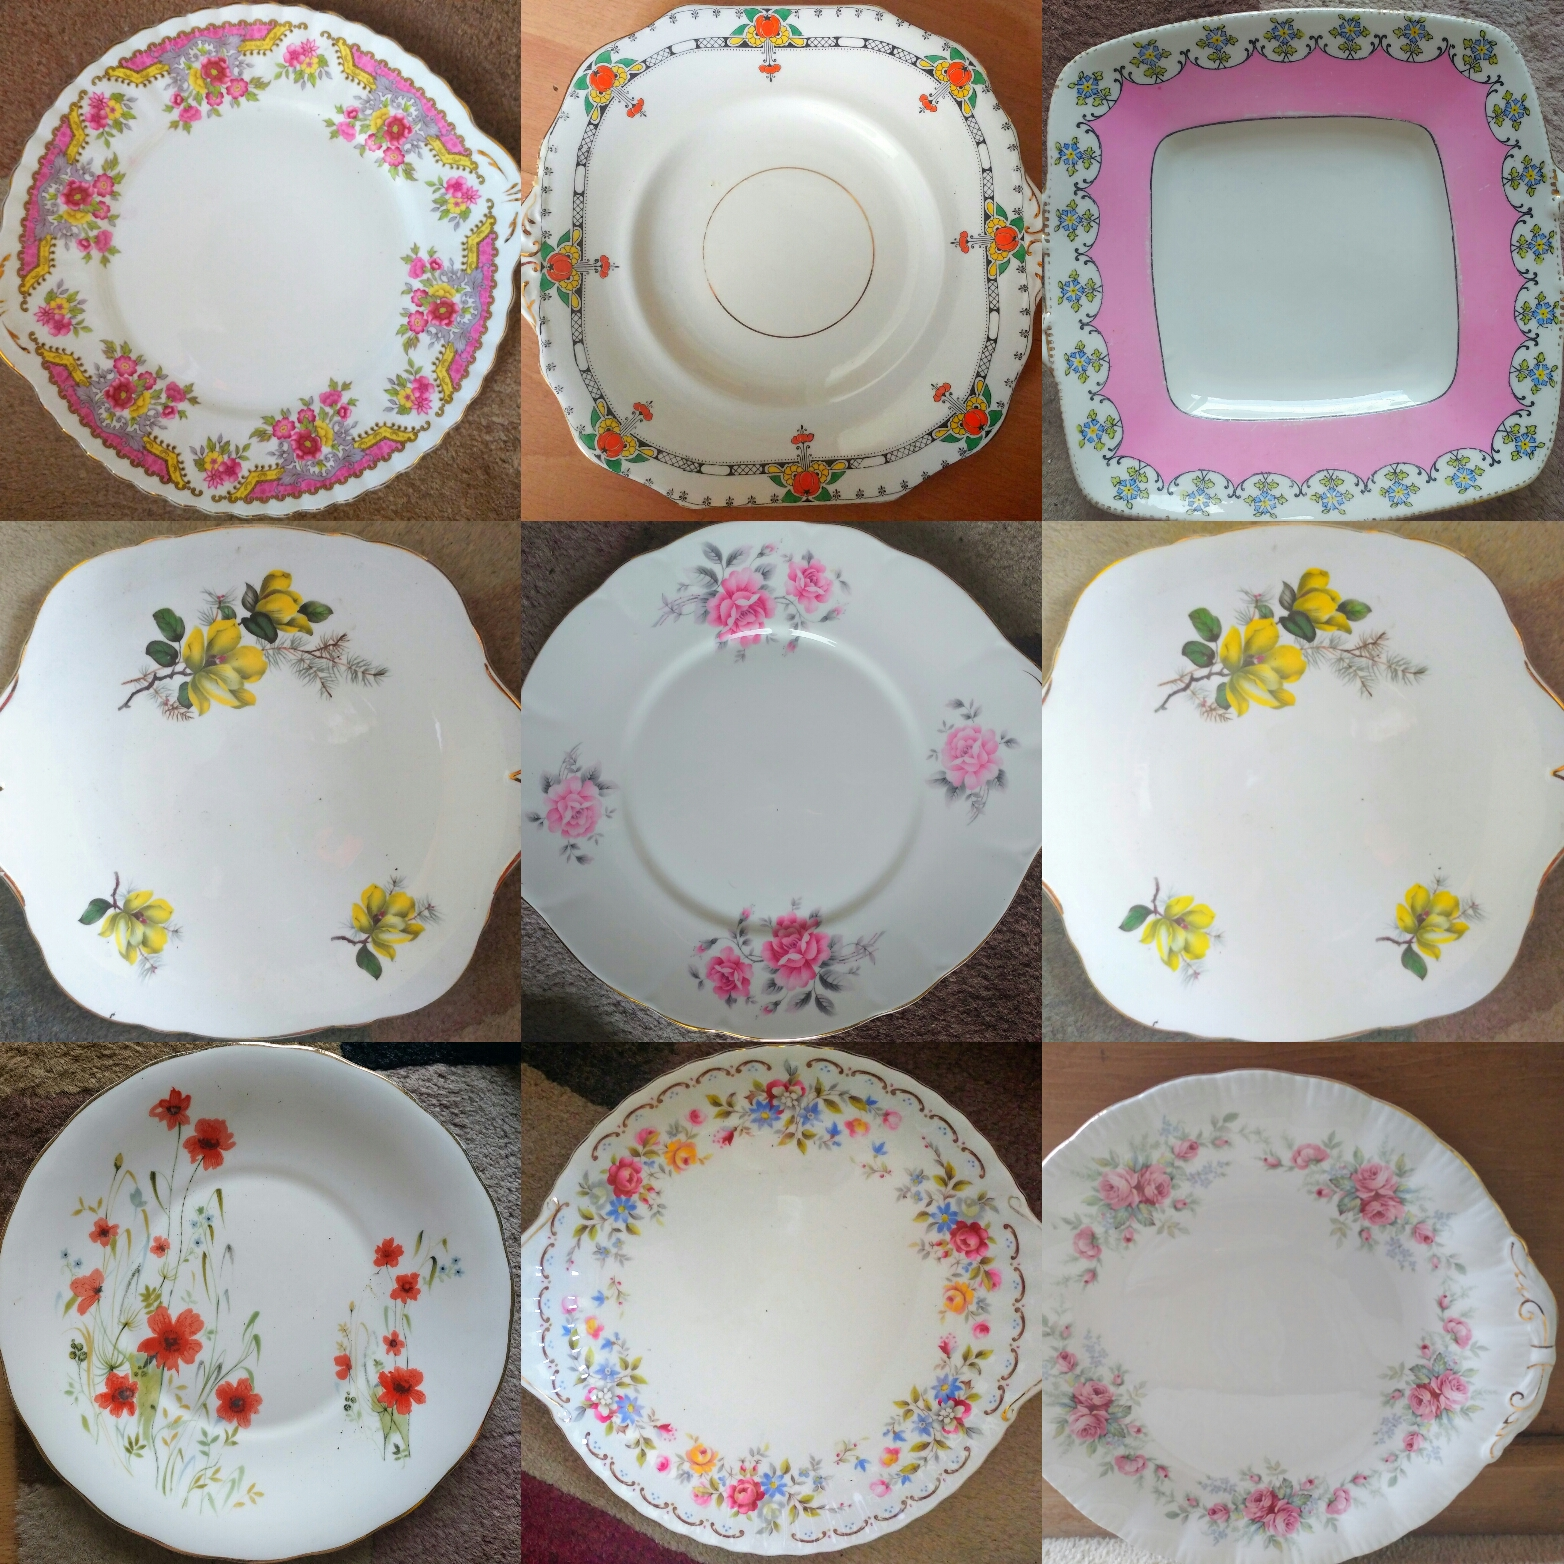 Job Lot 3 Vintage Mismatched China Mix Cake / Sandwich Plates Floral Chintz u2013 Perfect Bulk Tableware for a Mad Hatters Tea Party or Wedding etc! & xxbritishvintagemarketJob Lot 3 Vintage Mismatched China Mix Cake ...